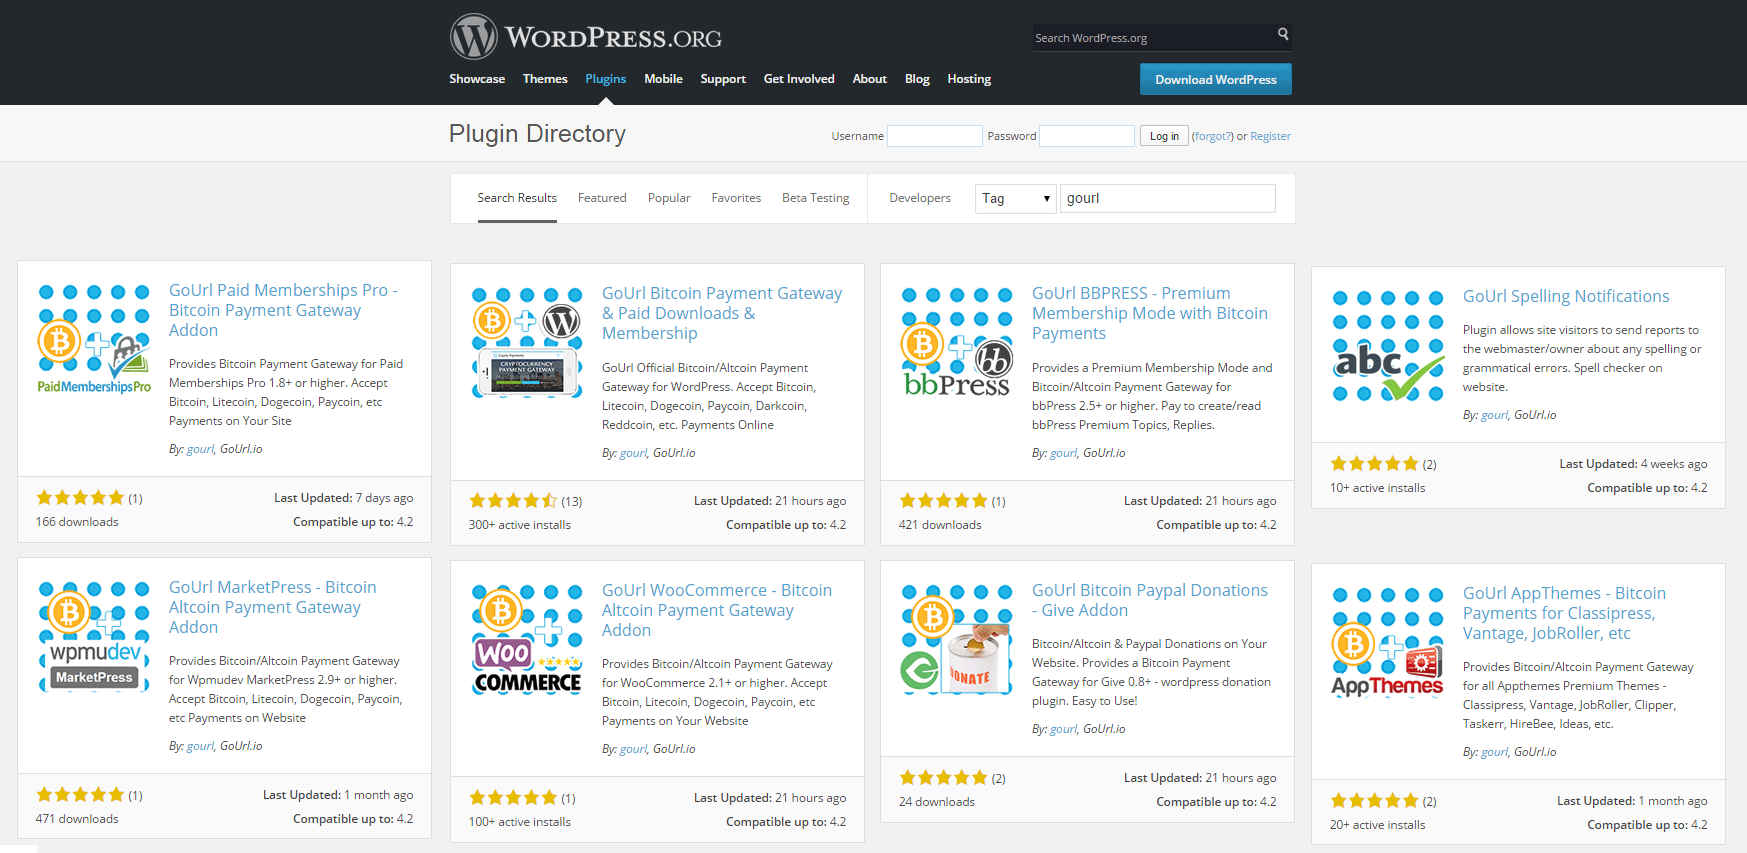 wordpress_directory.png